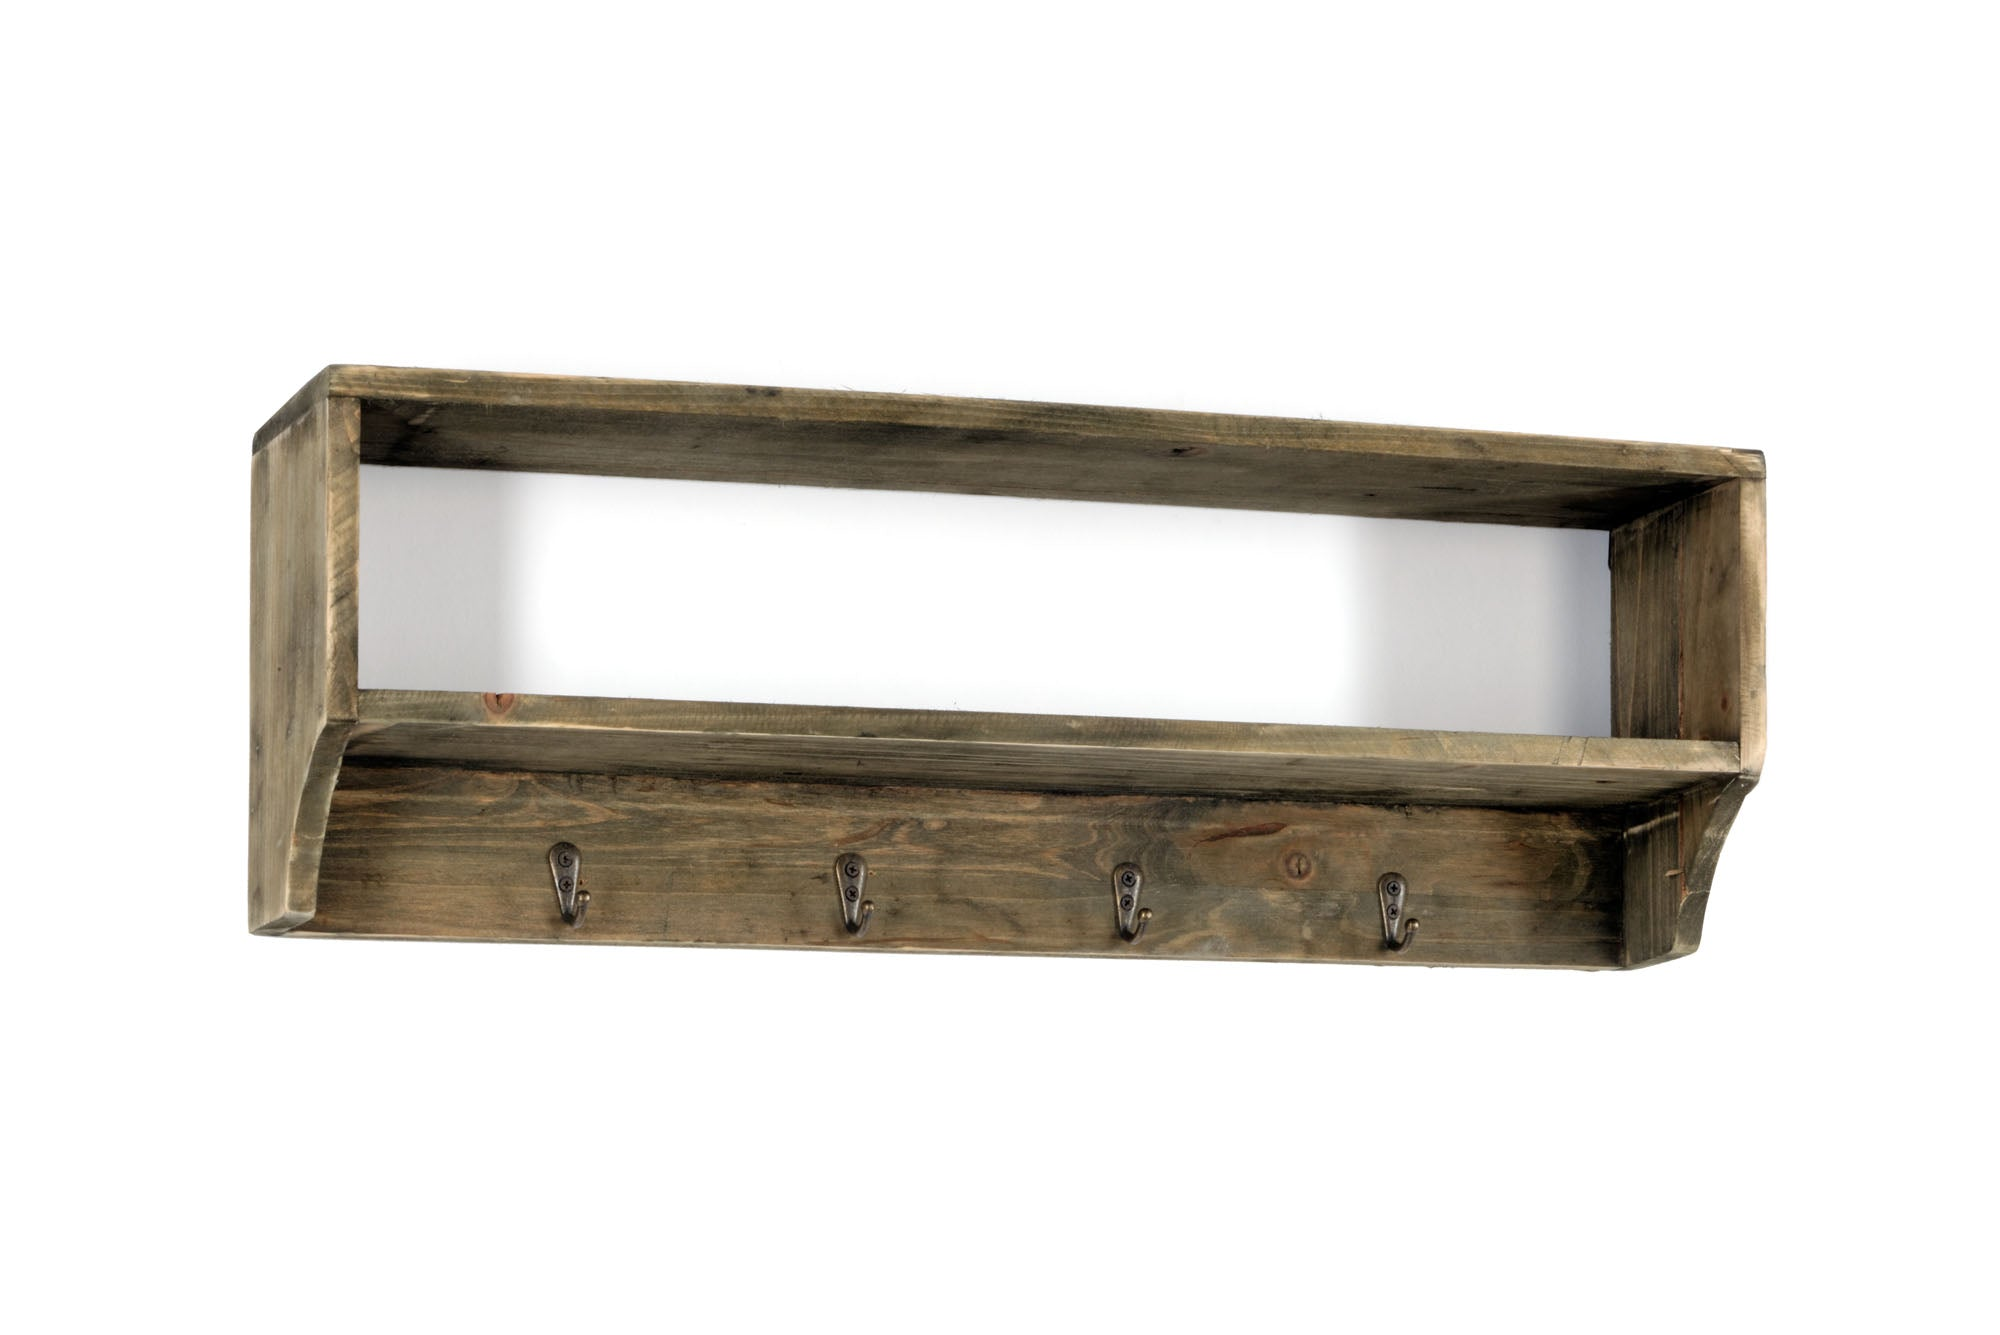 Wooden Wall Shelf with 4 Hooks 54 x 10 x 18 cm